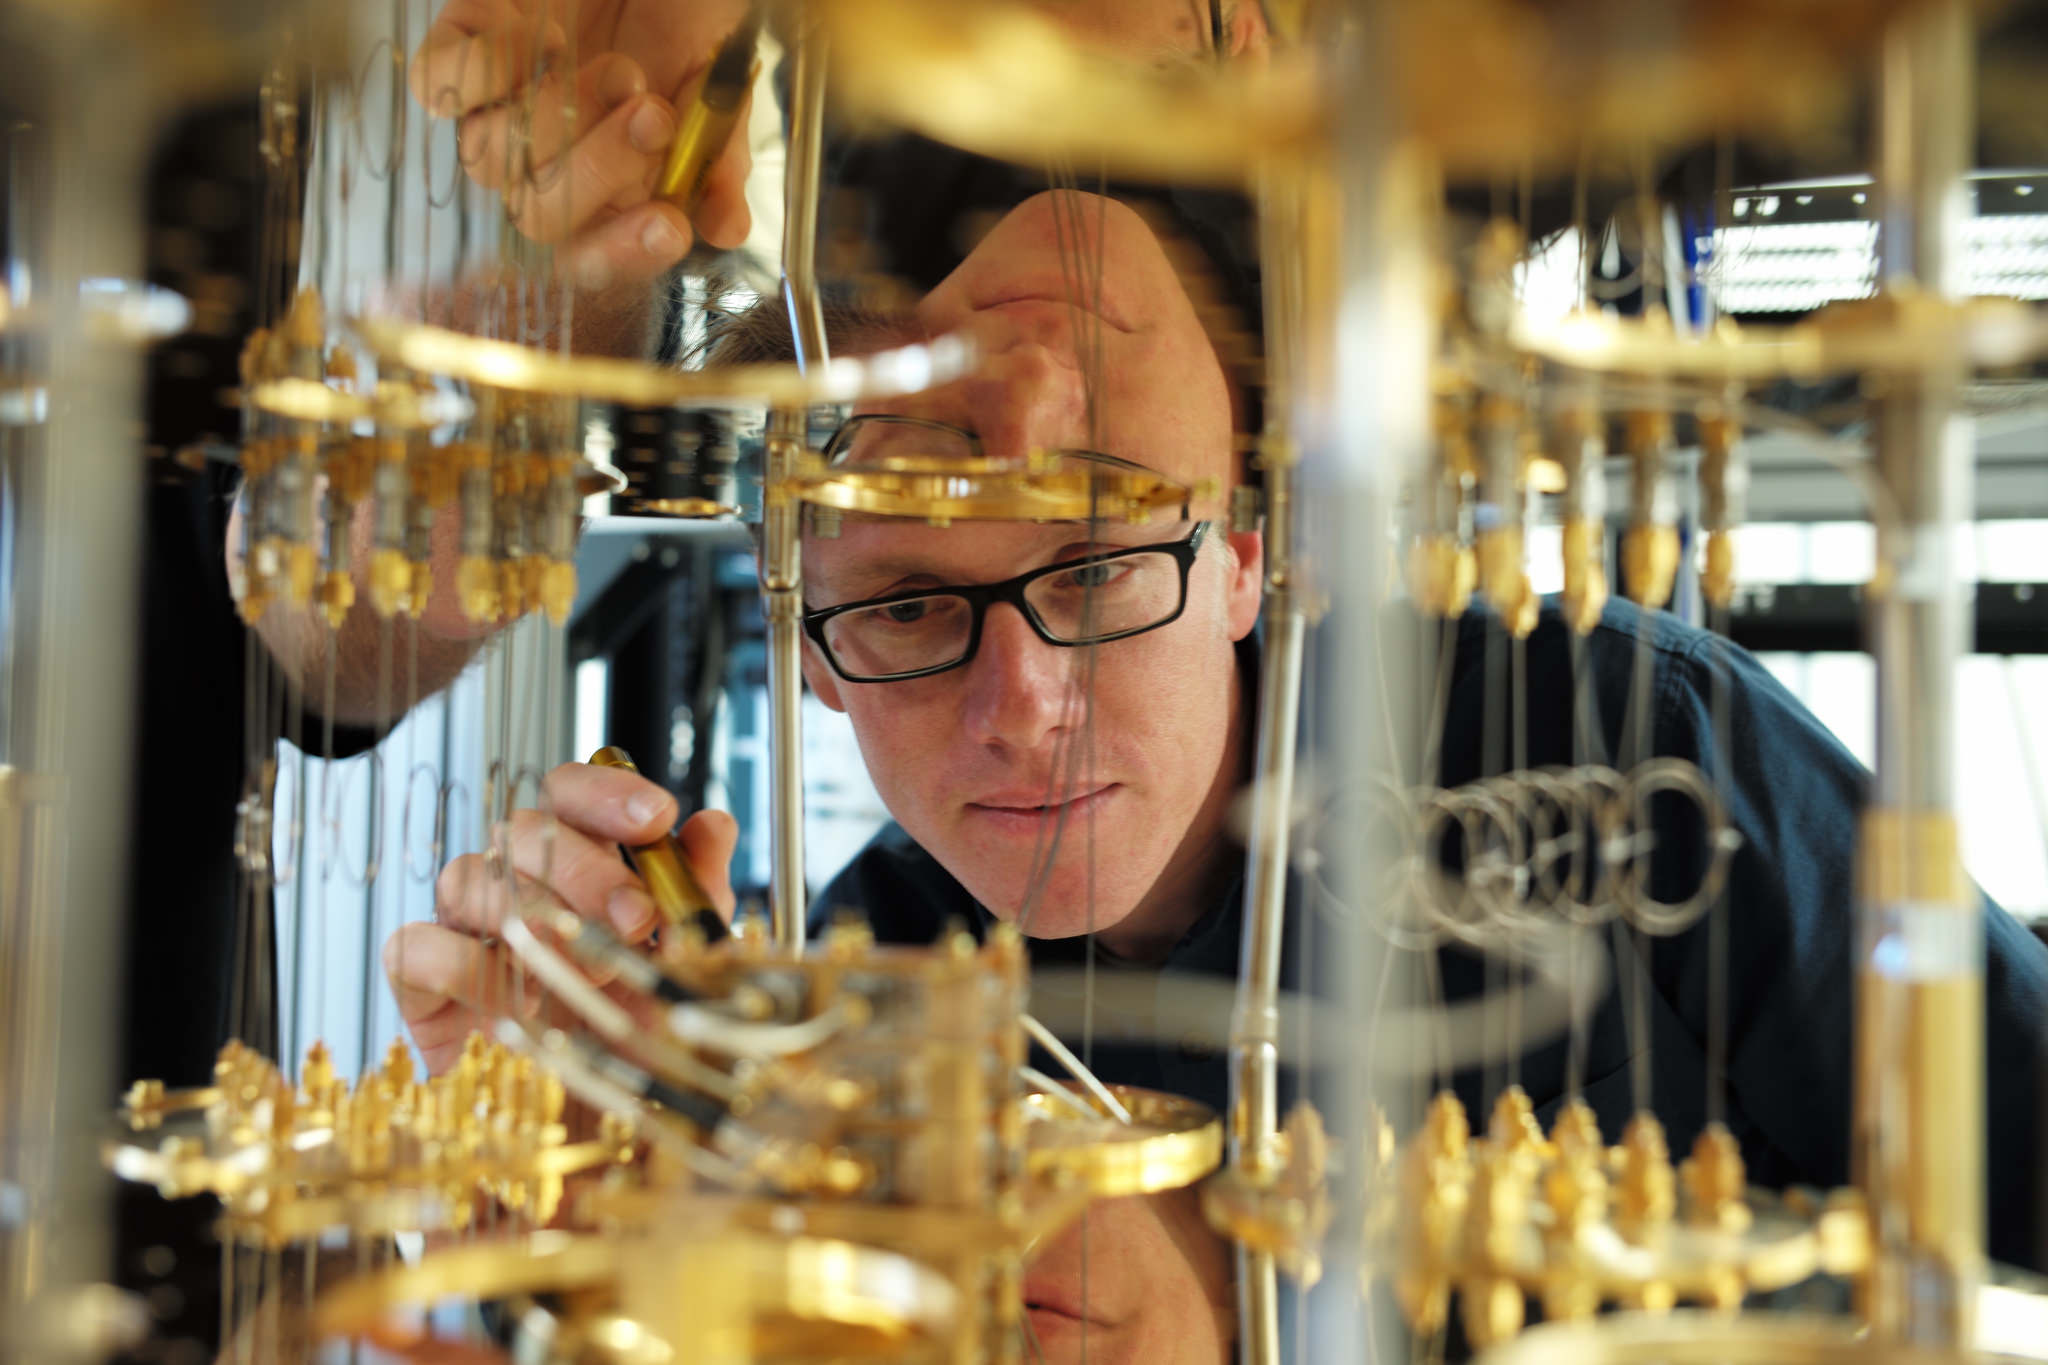 Just a decade and we'll have quantum computing